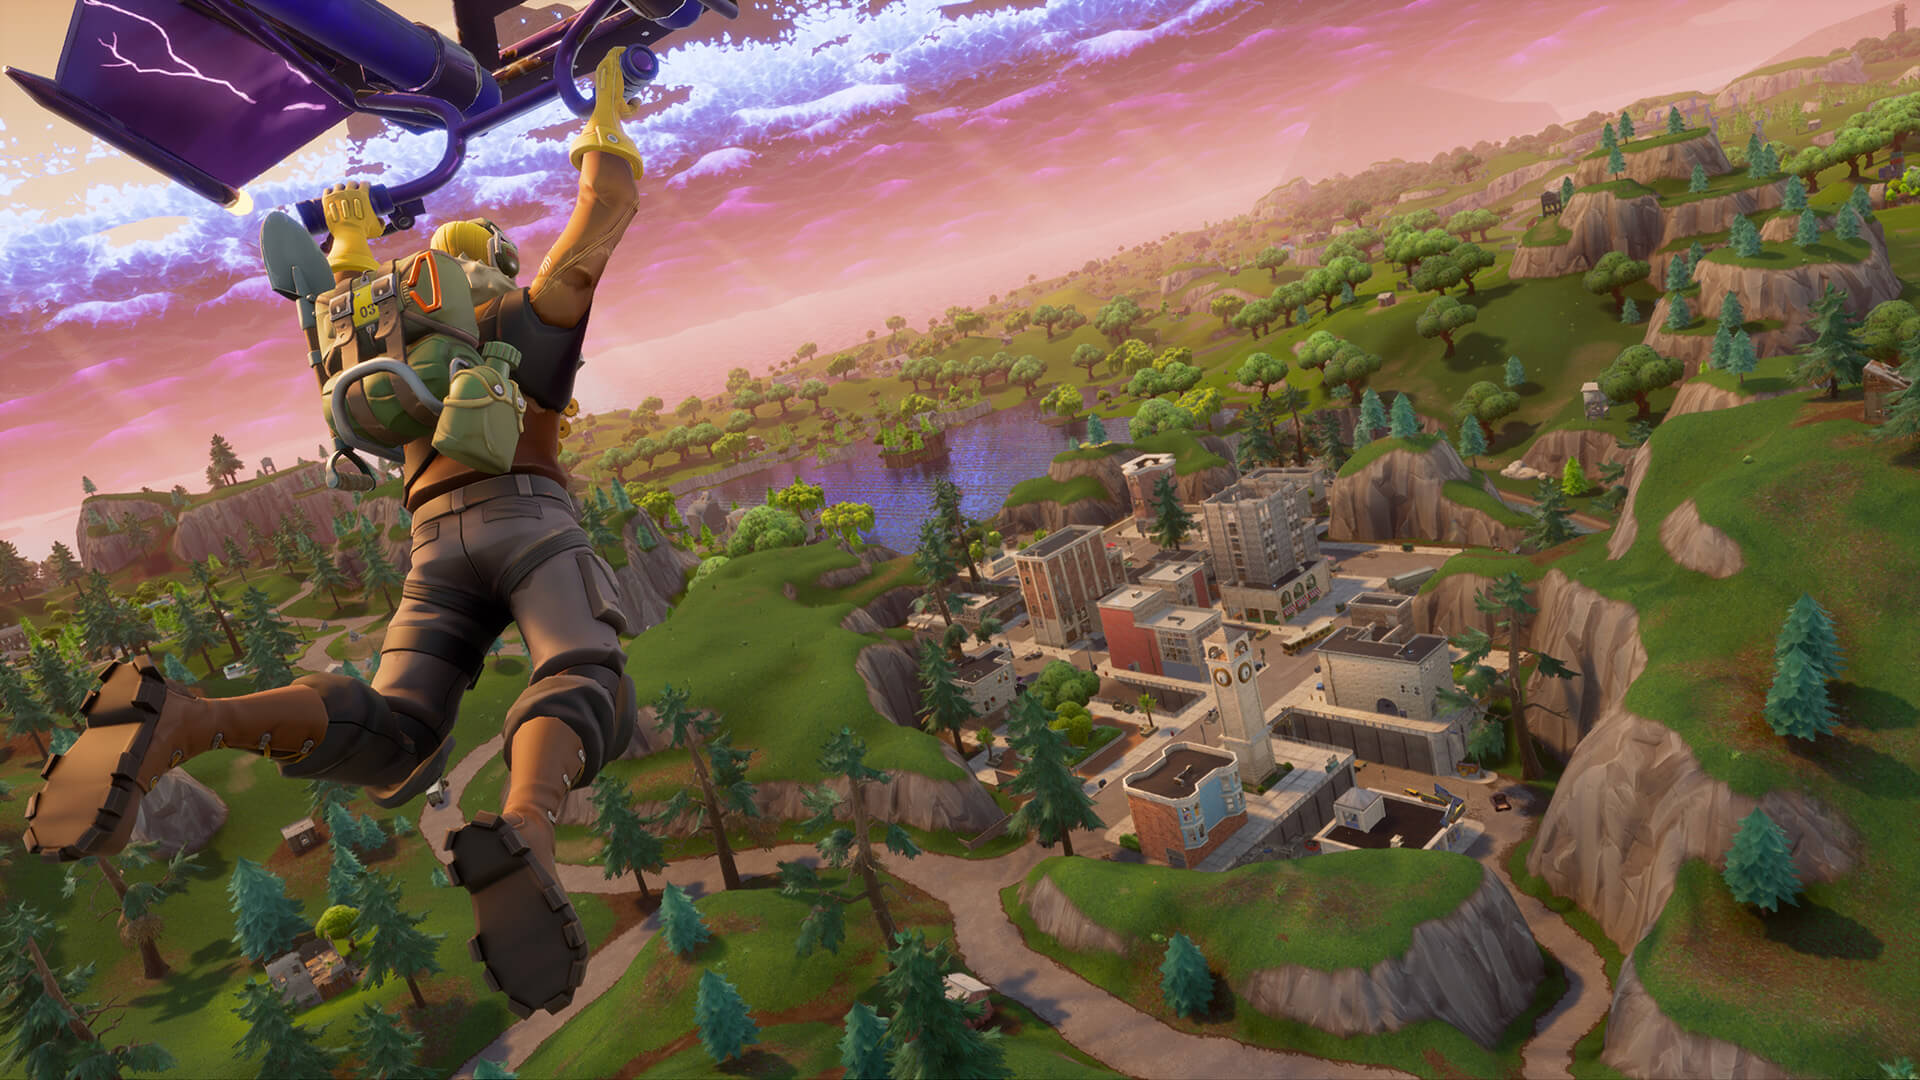 Fortnite V 2 2 0 Patch Brings Changes to Battle Royale and